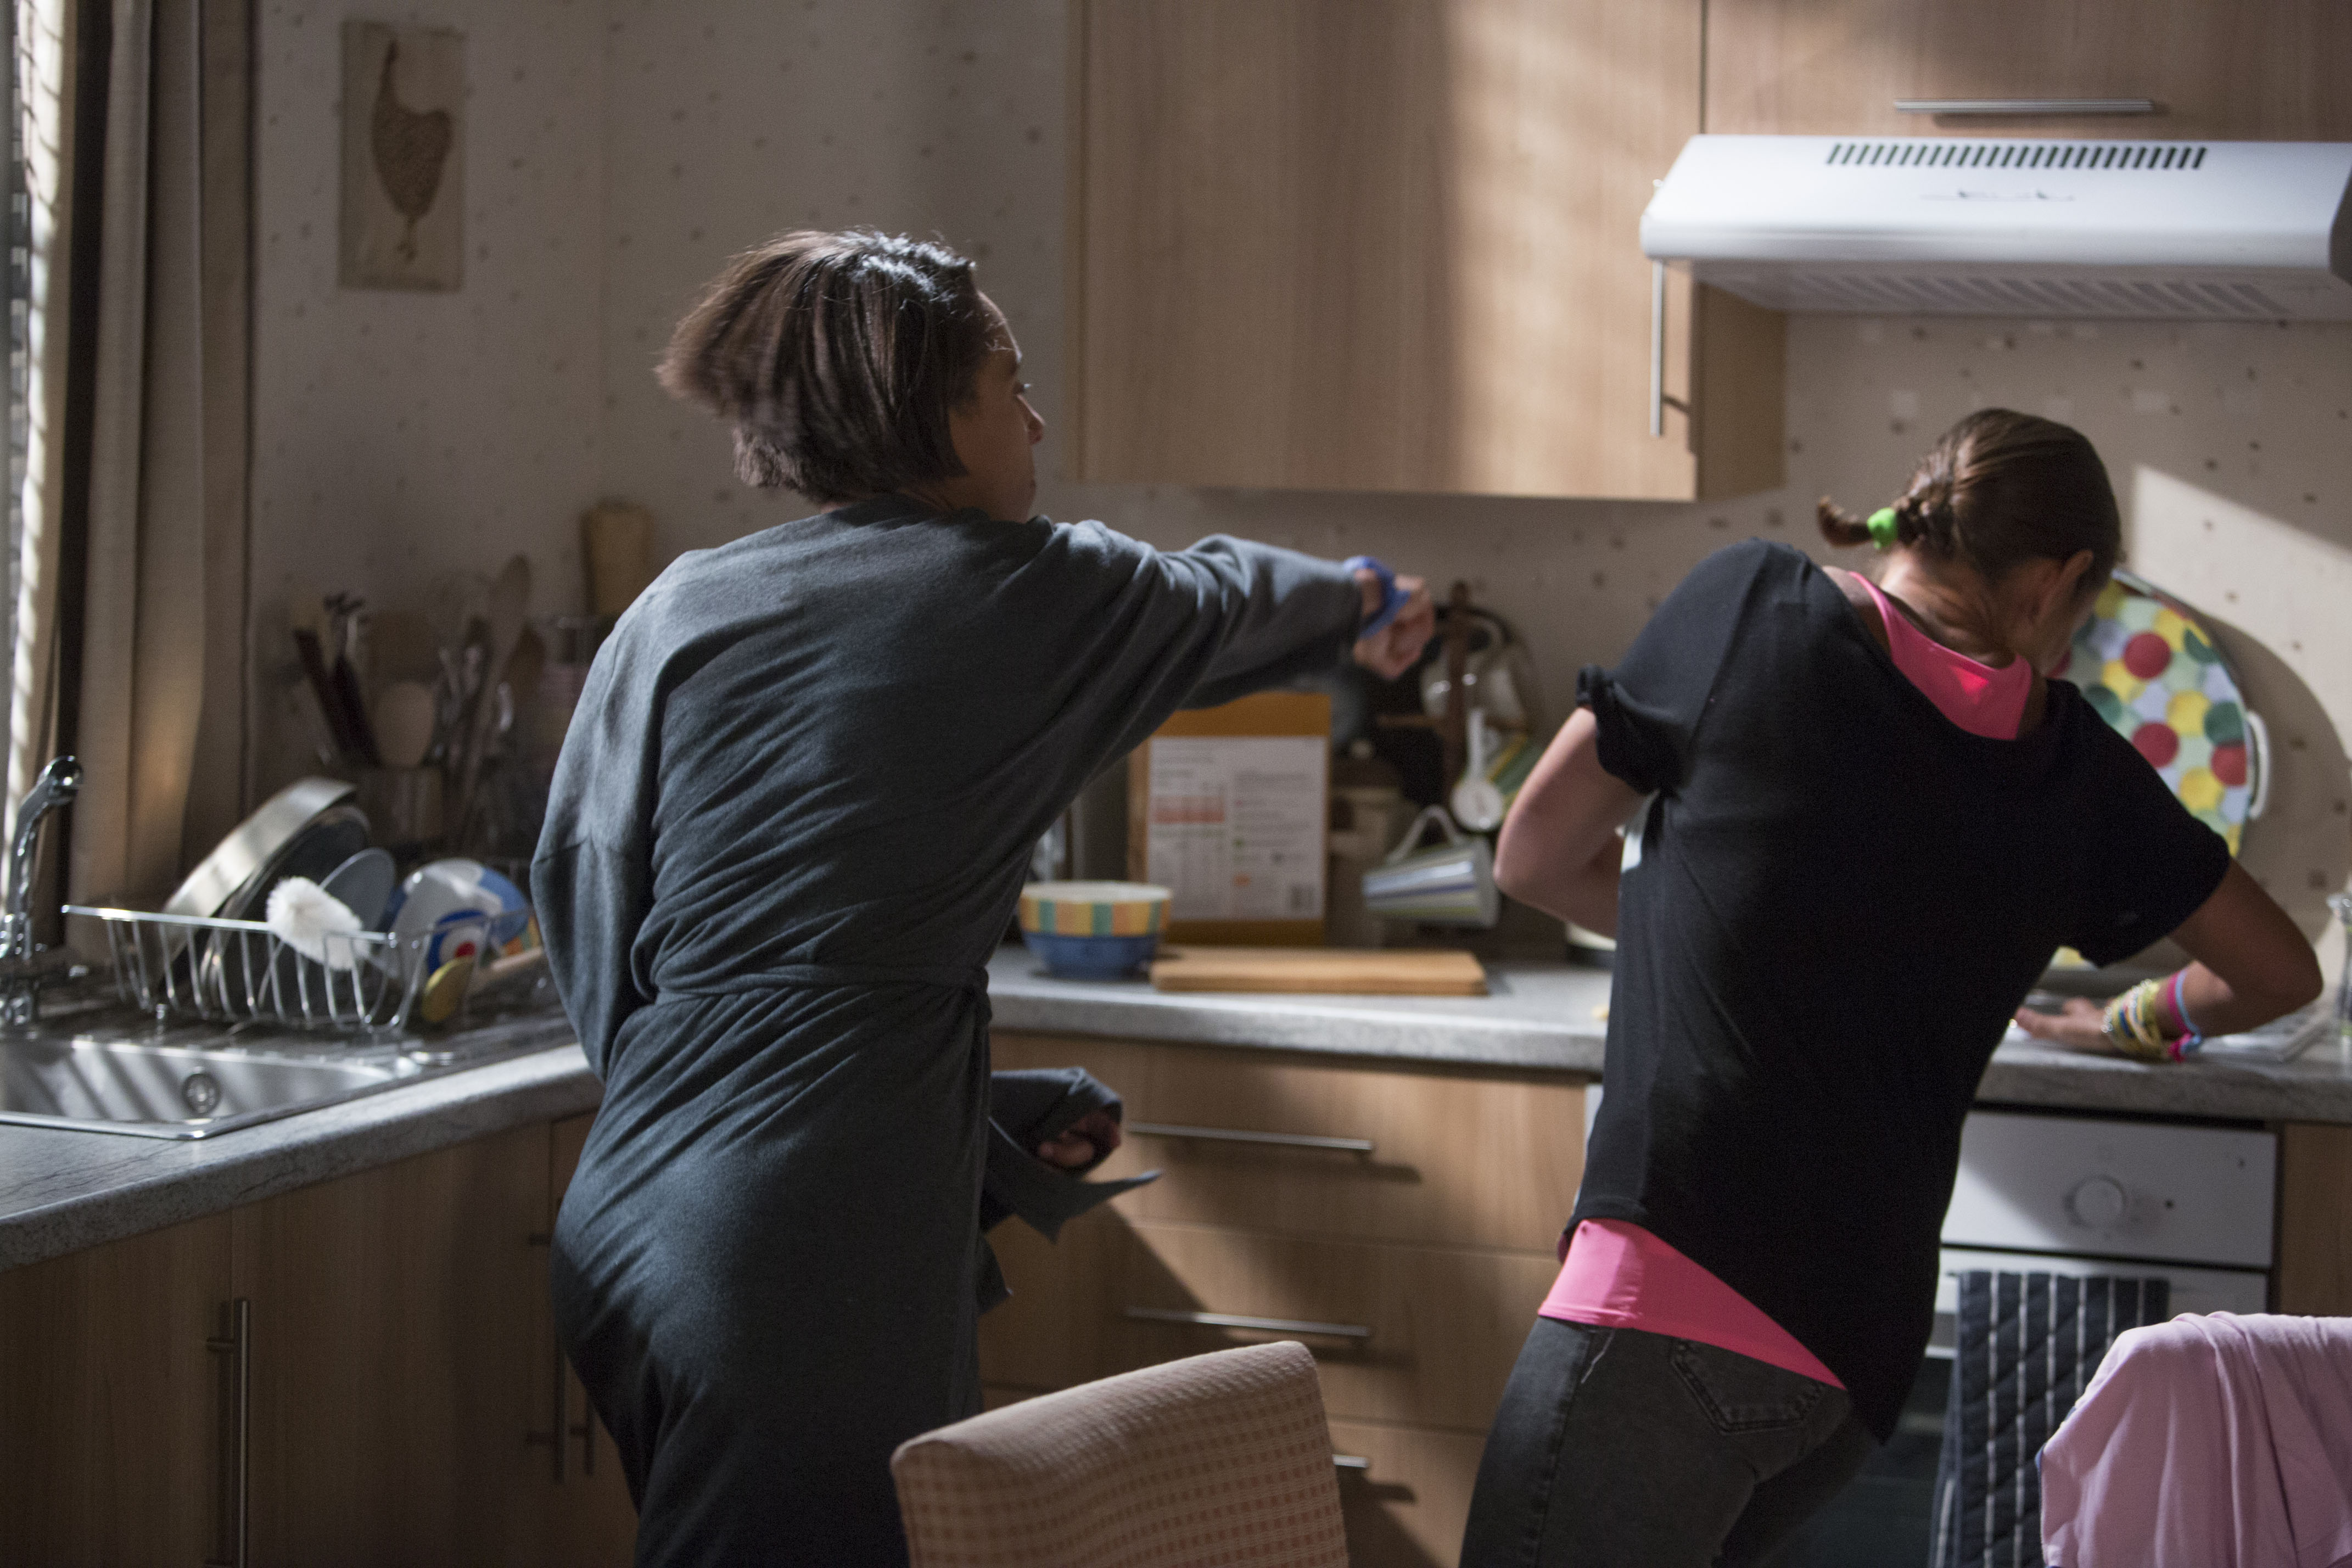 We haven't given EastEnders' Tosh and Tina domestic violence storyline enough credit